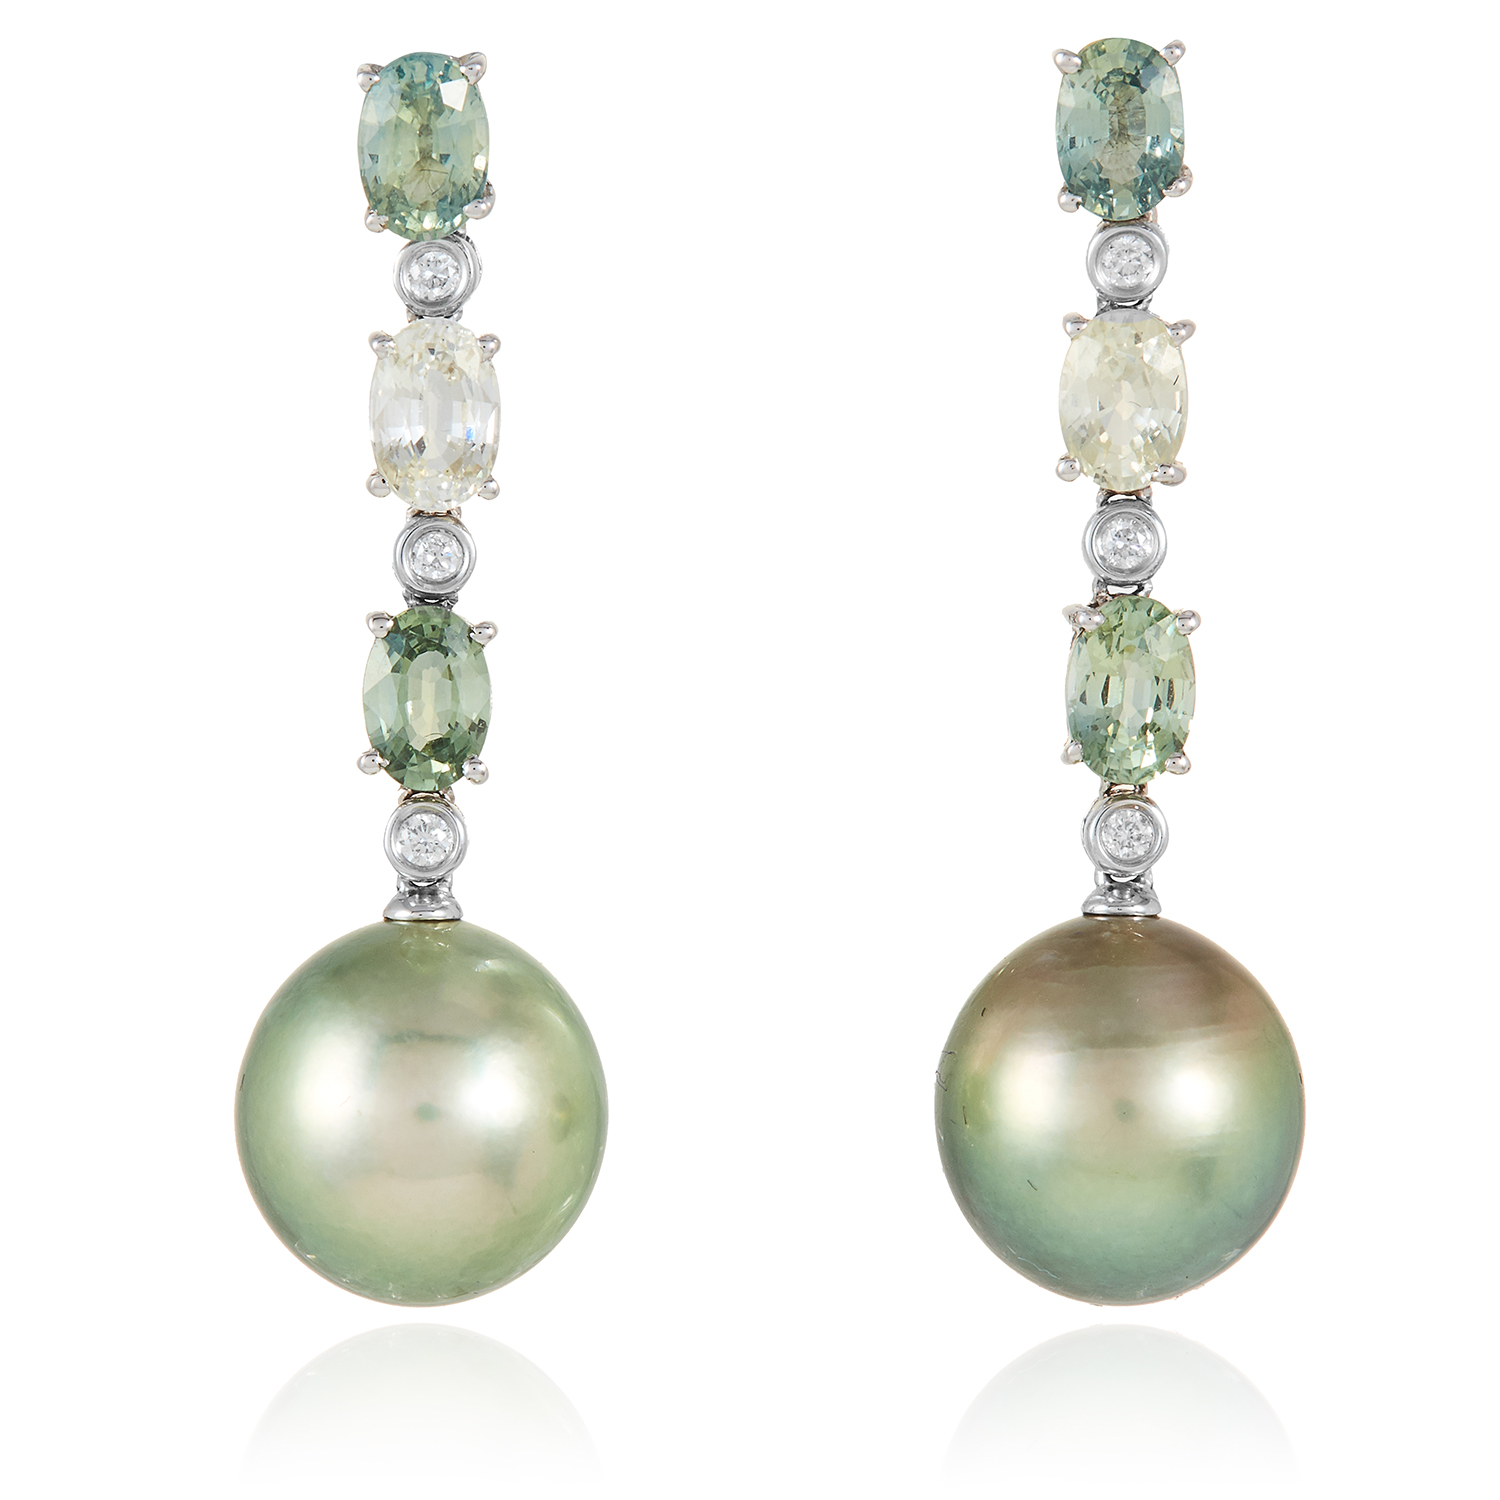 A PAIR OF SAPPHIRE, DIAMOND AND PEARL EARRINGS in 18ct white gold, each suspending a large green